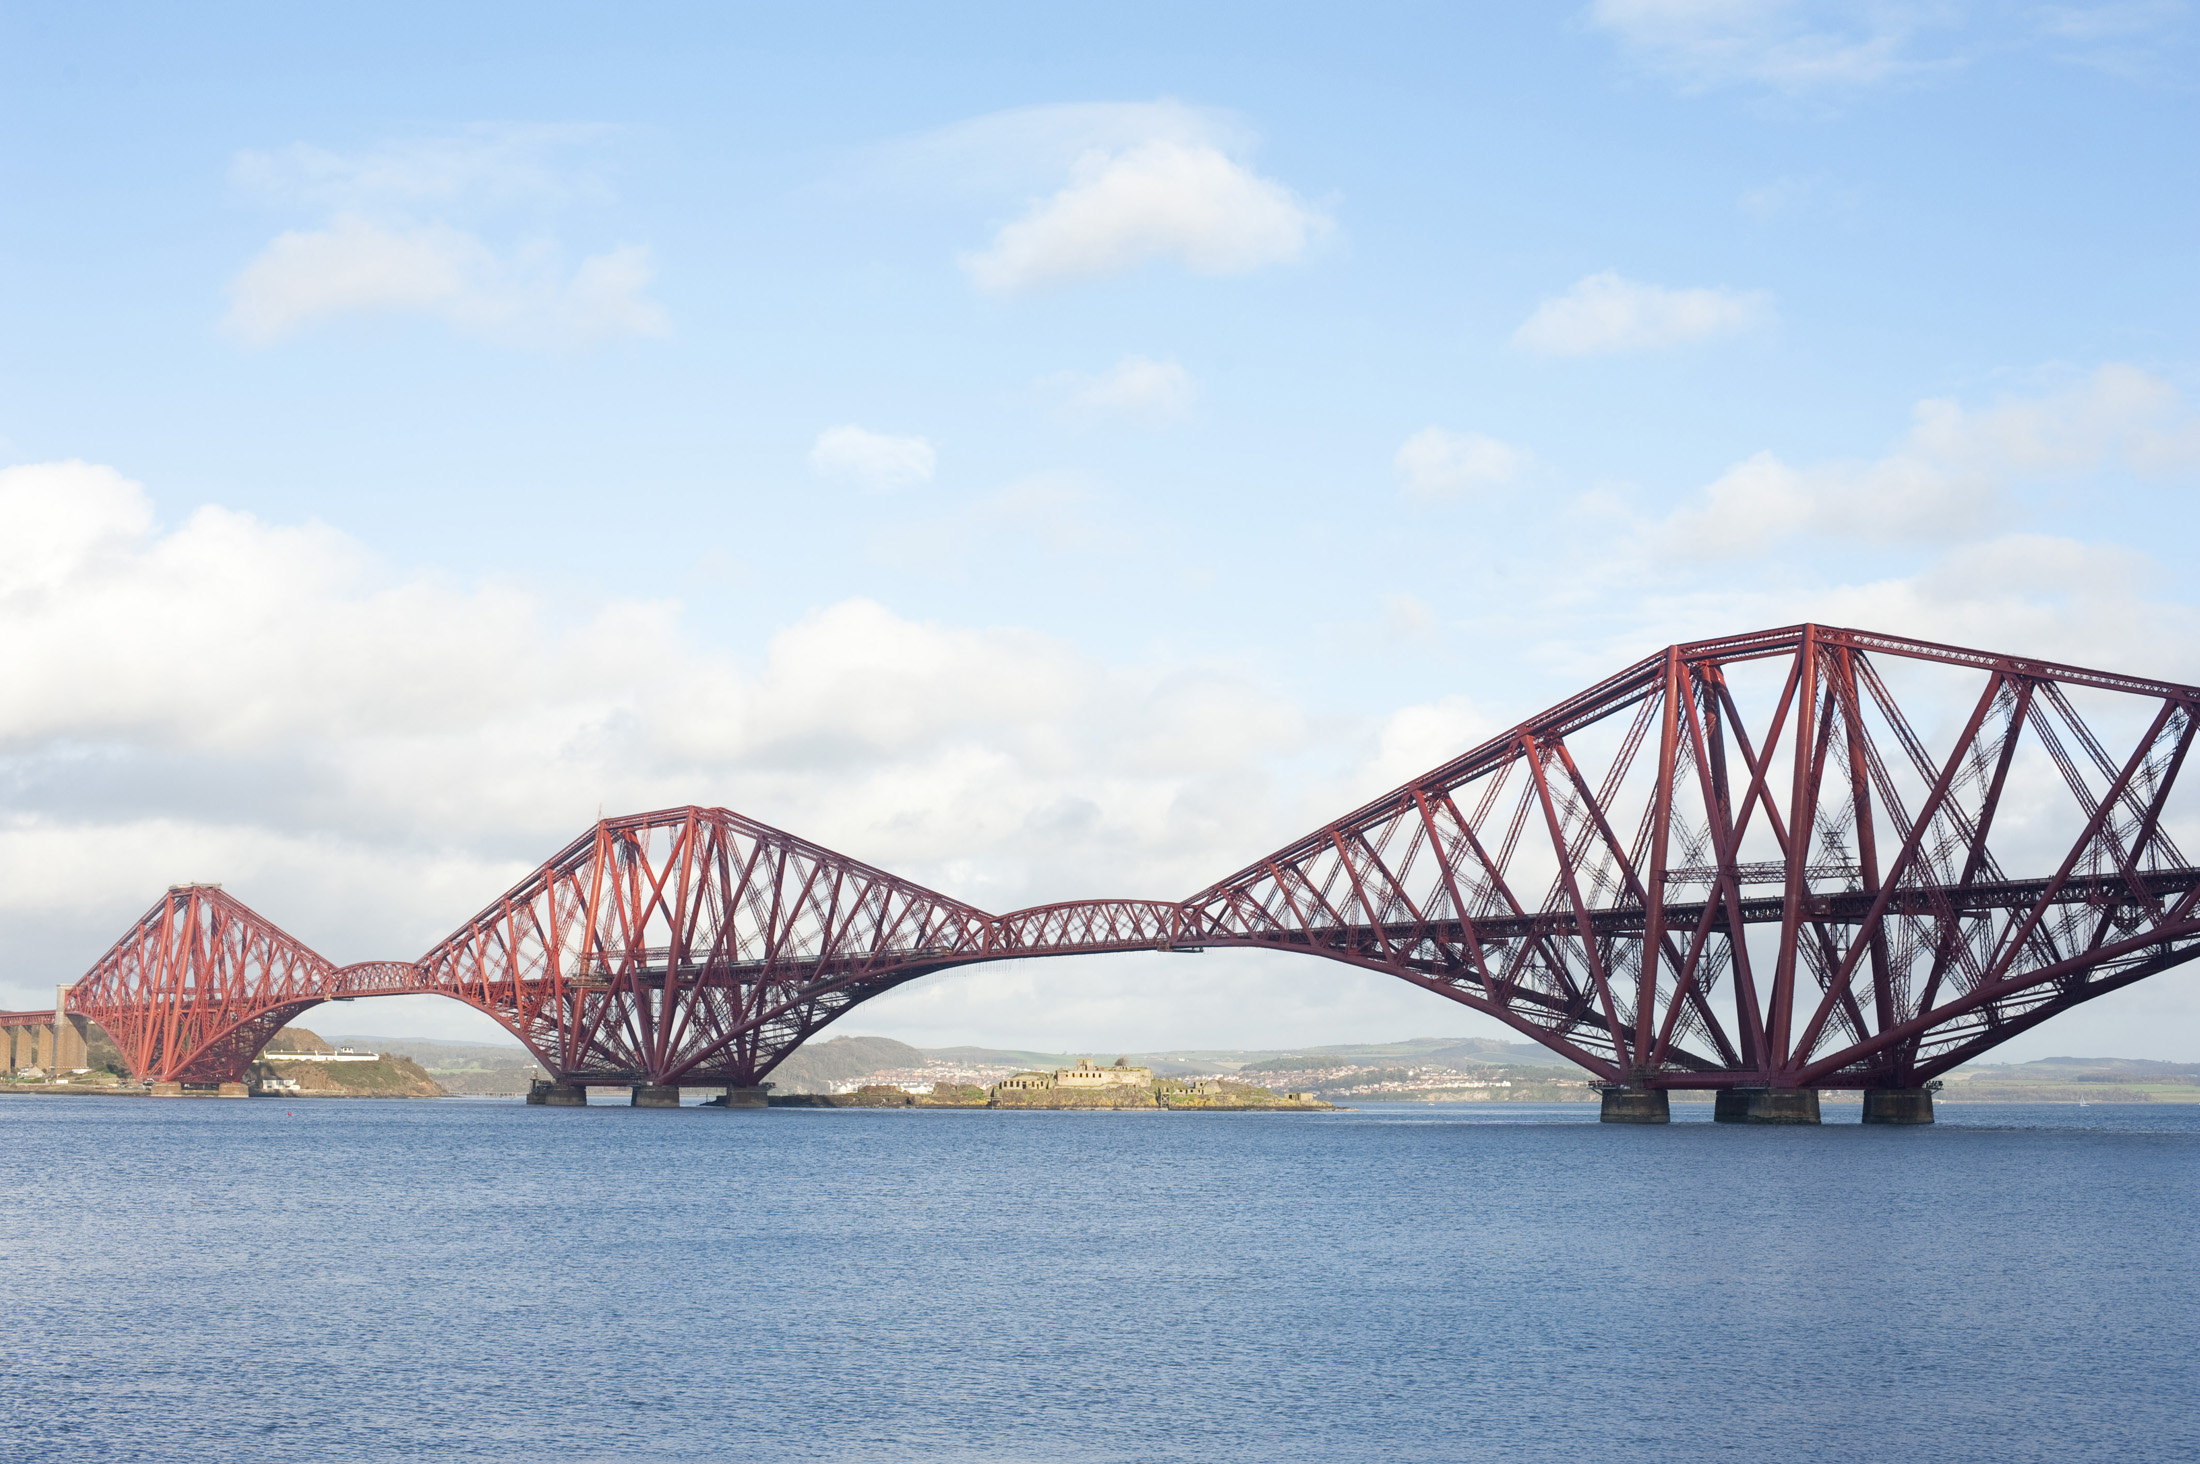 panoramic view of the forth rail bridge crossing the firth of forth, scotland